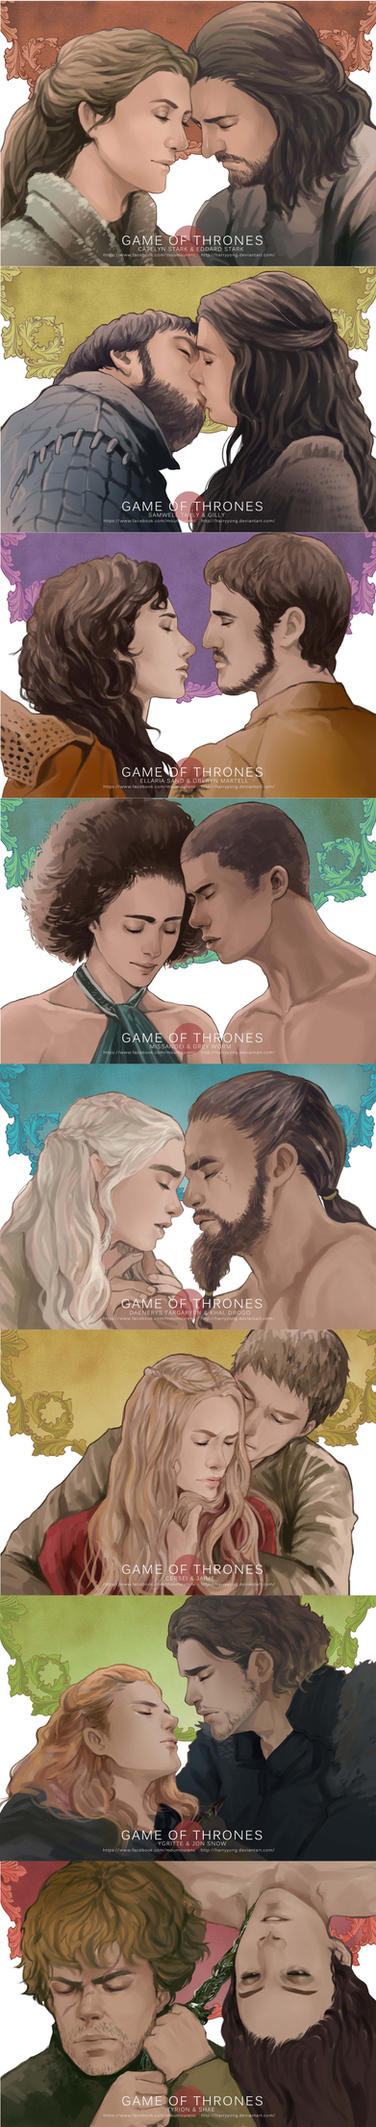 Game of Thrones 'LOVE' 2 by maorenc